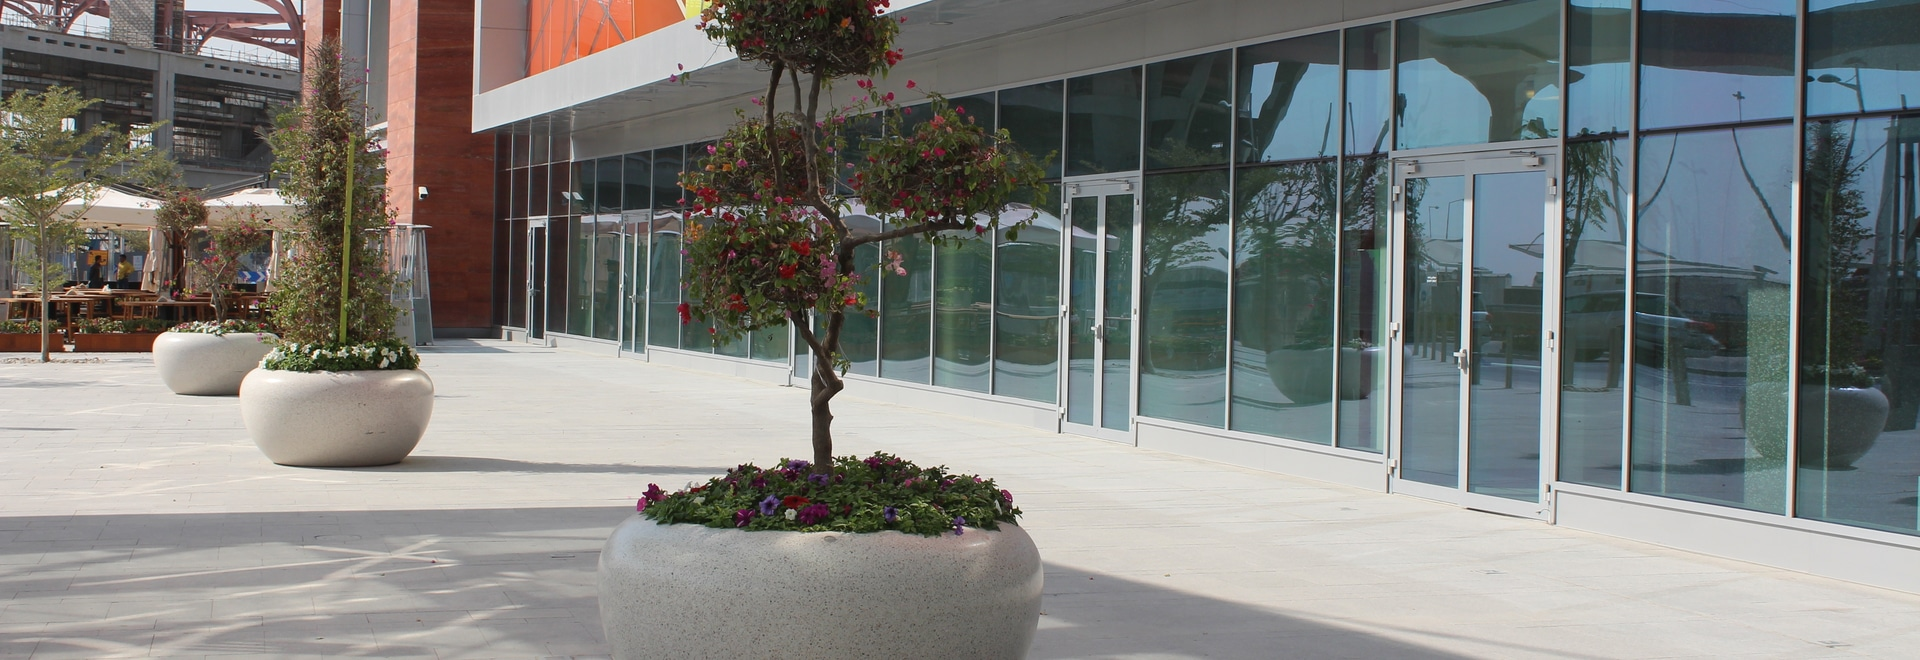 Bellitalia precious stones planters for the Mall of Qatar